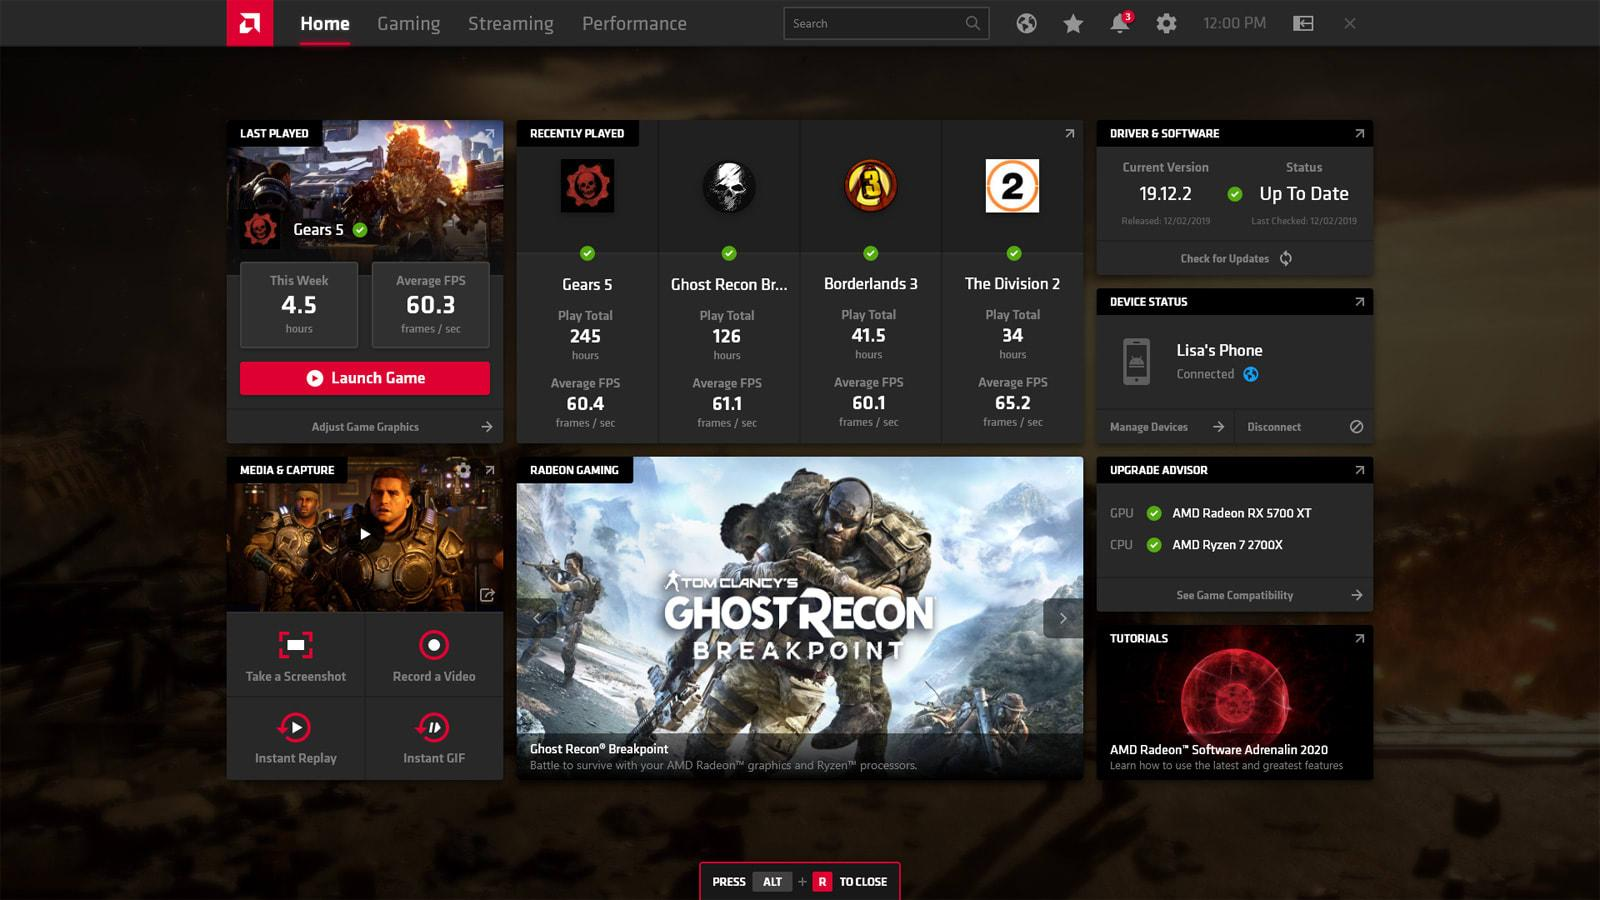 Amd S New Radeon Software Offers Game Streaming Away From Home Engadget